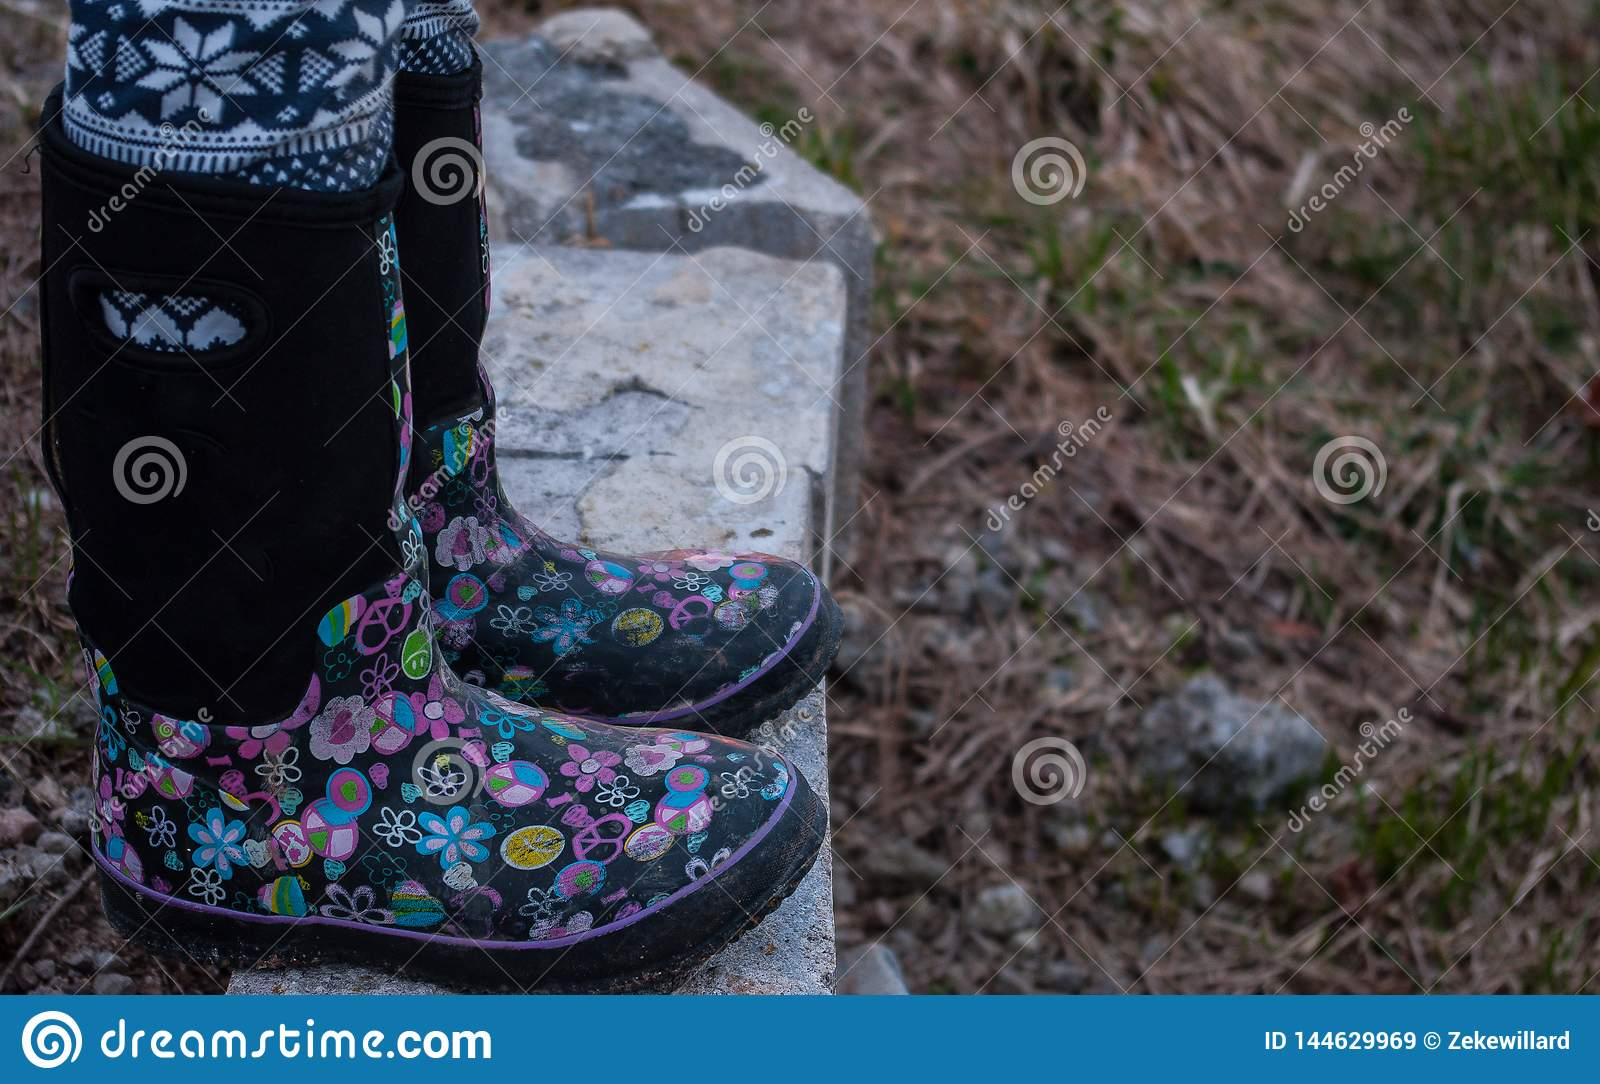 Girl wearing black rubber boots with pink designs